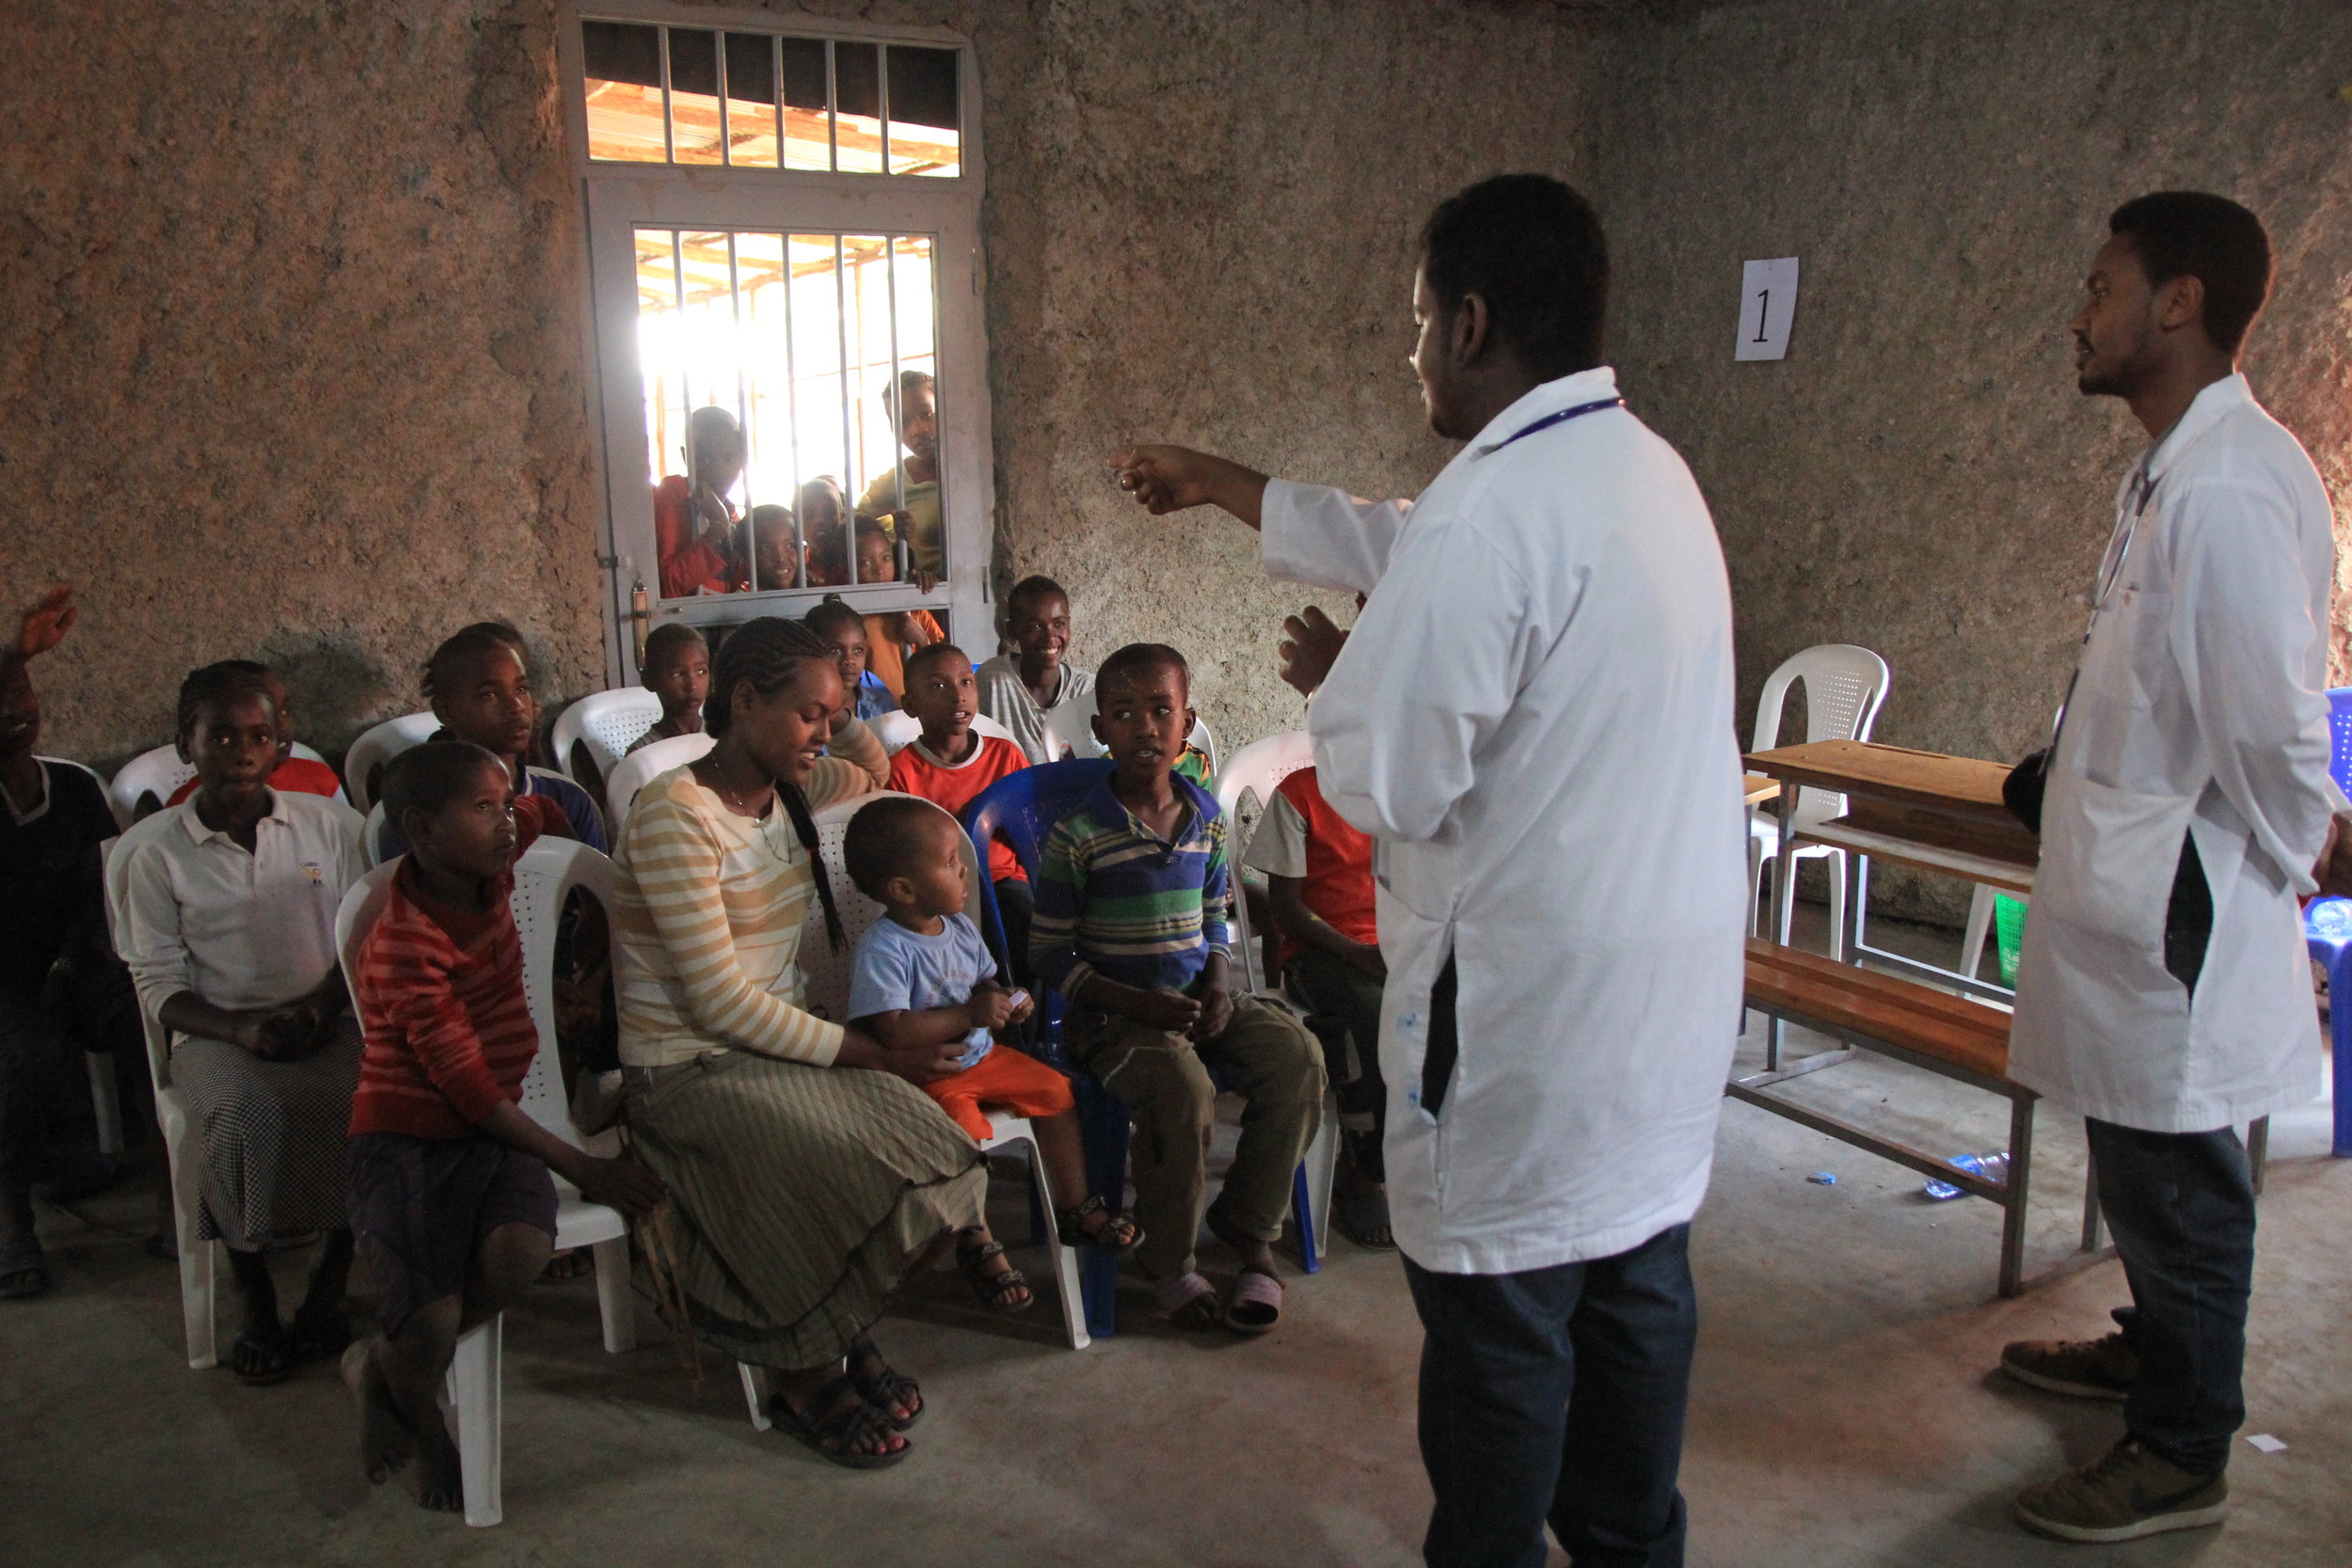 Picture 5: Mobile clinic in Hawassa: Day 3 Ethiopian medical students teaching the children about hand washing and dental hygiene. More than 125 children participated in the teachings and activities.